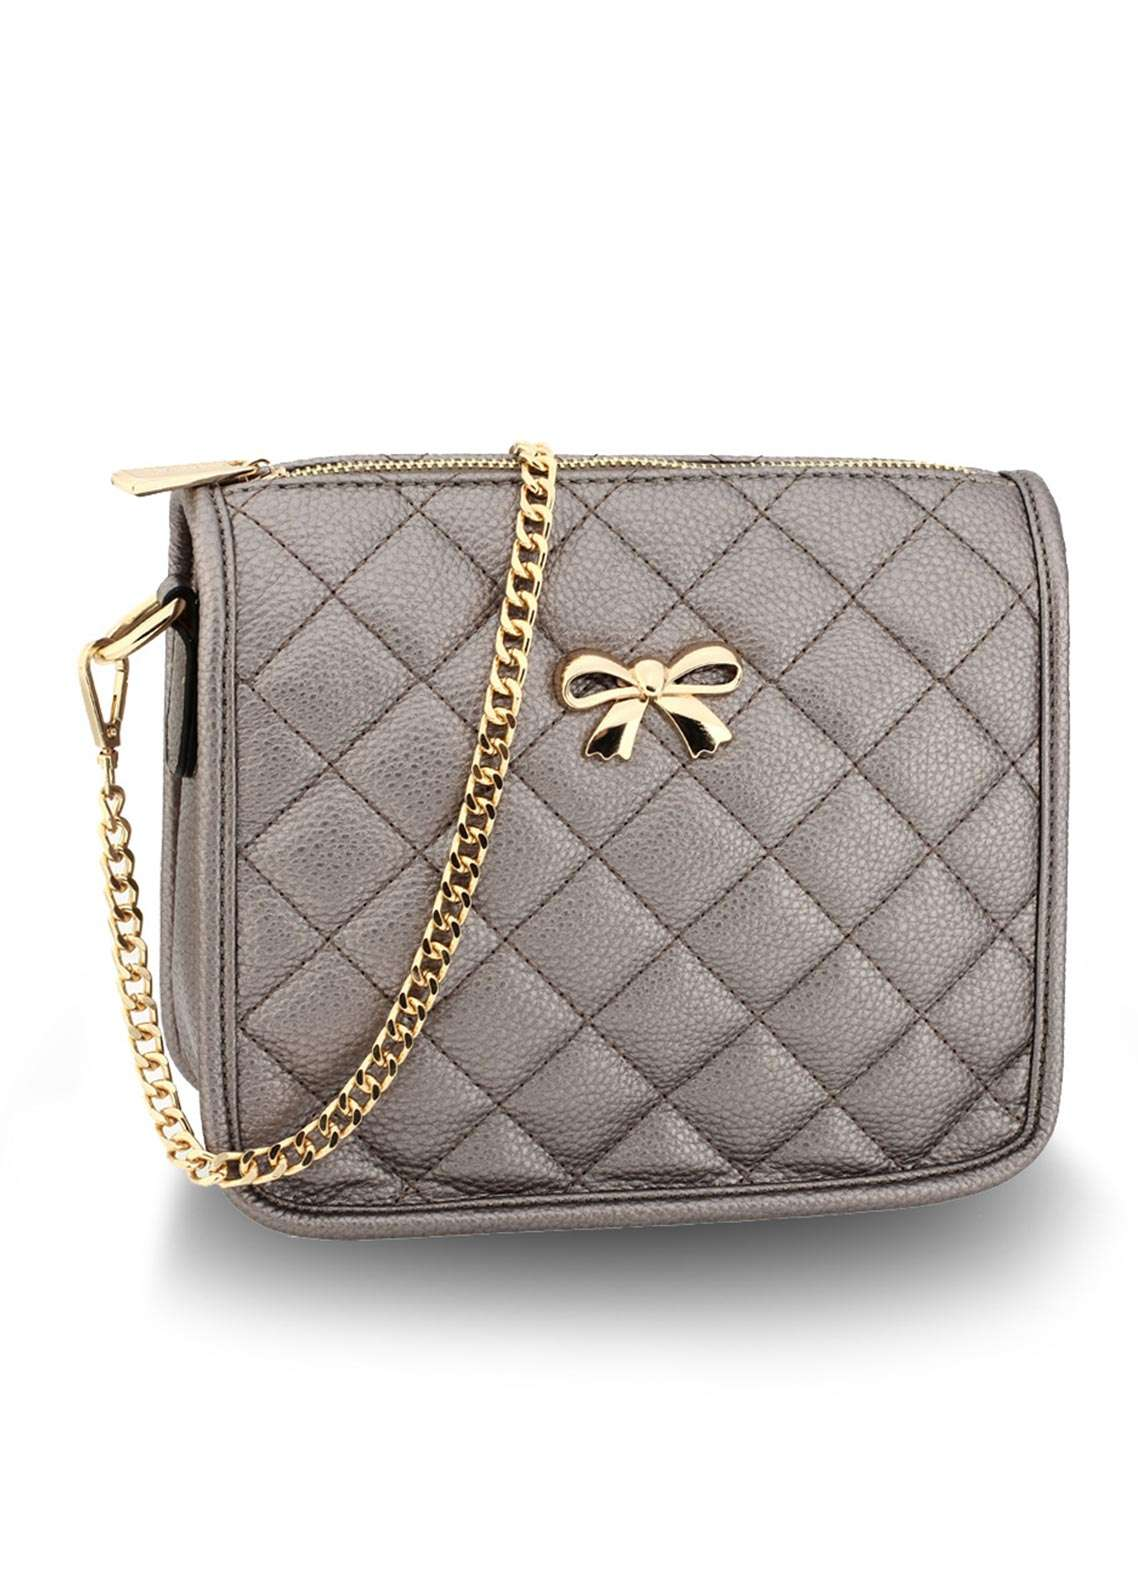 Anna Grace London Faux Leather Crossbody  Bags  for Women  Grey with Quilted Texture